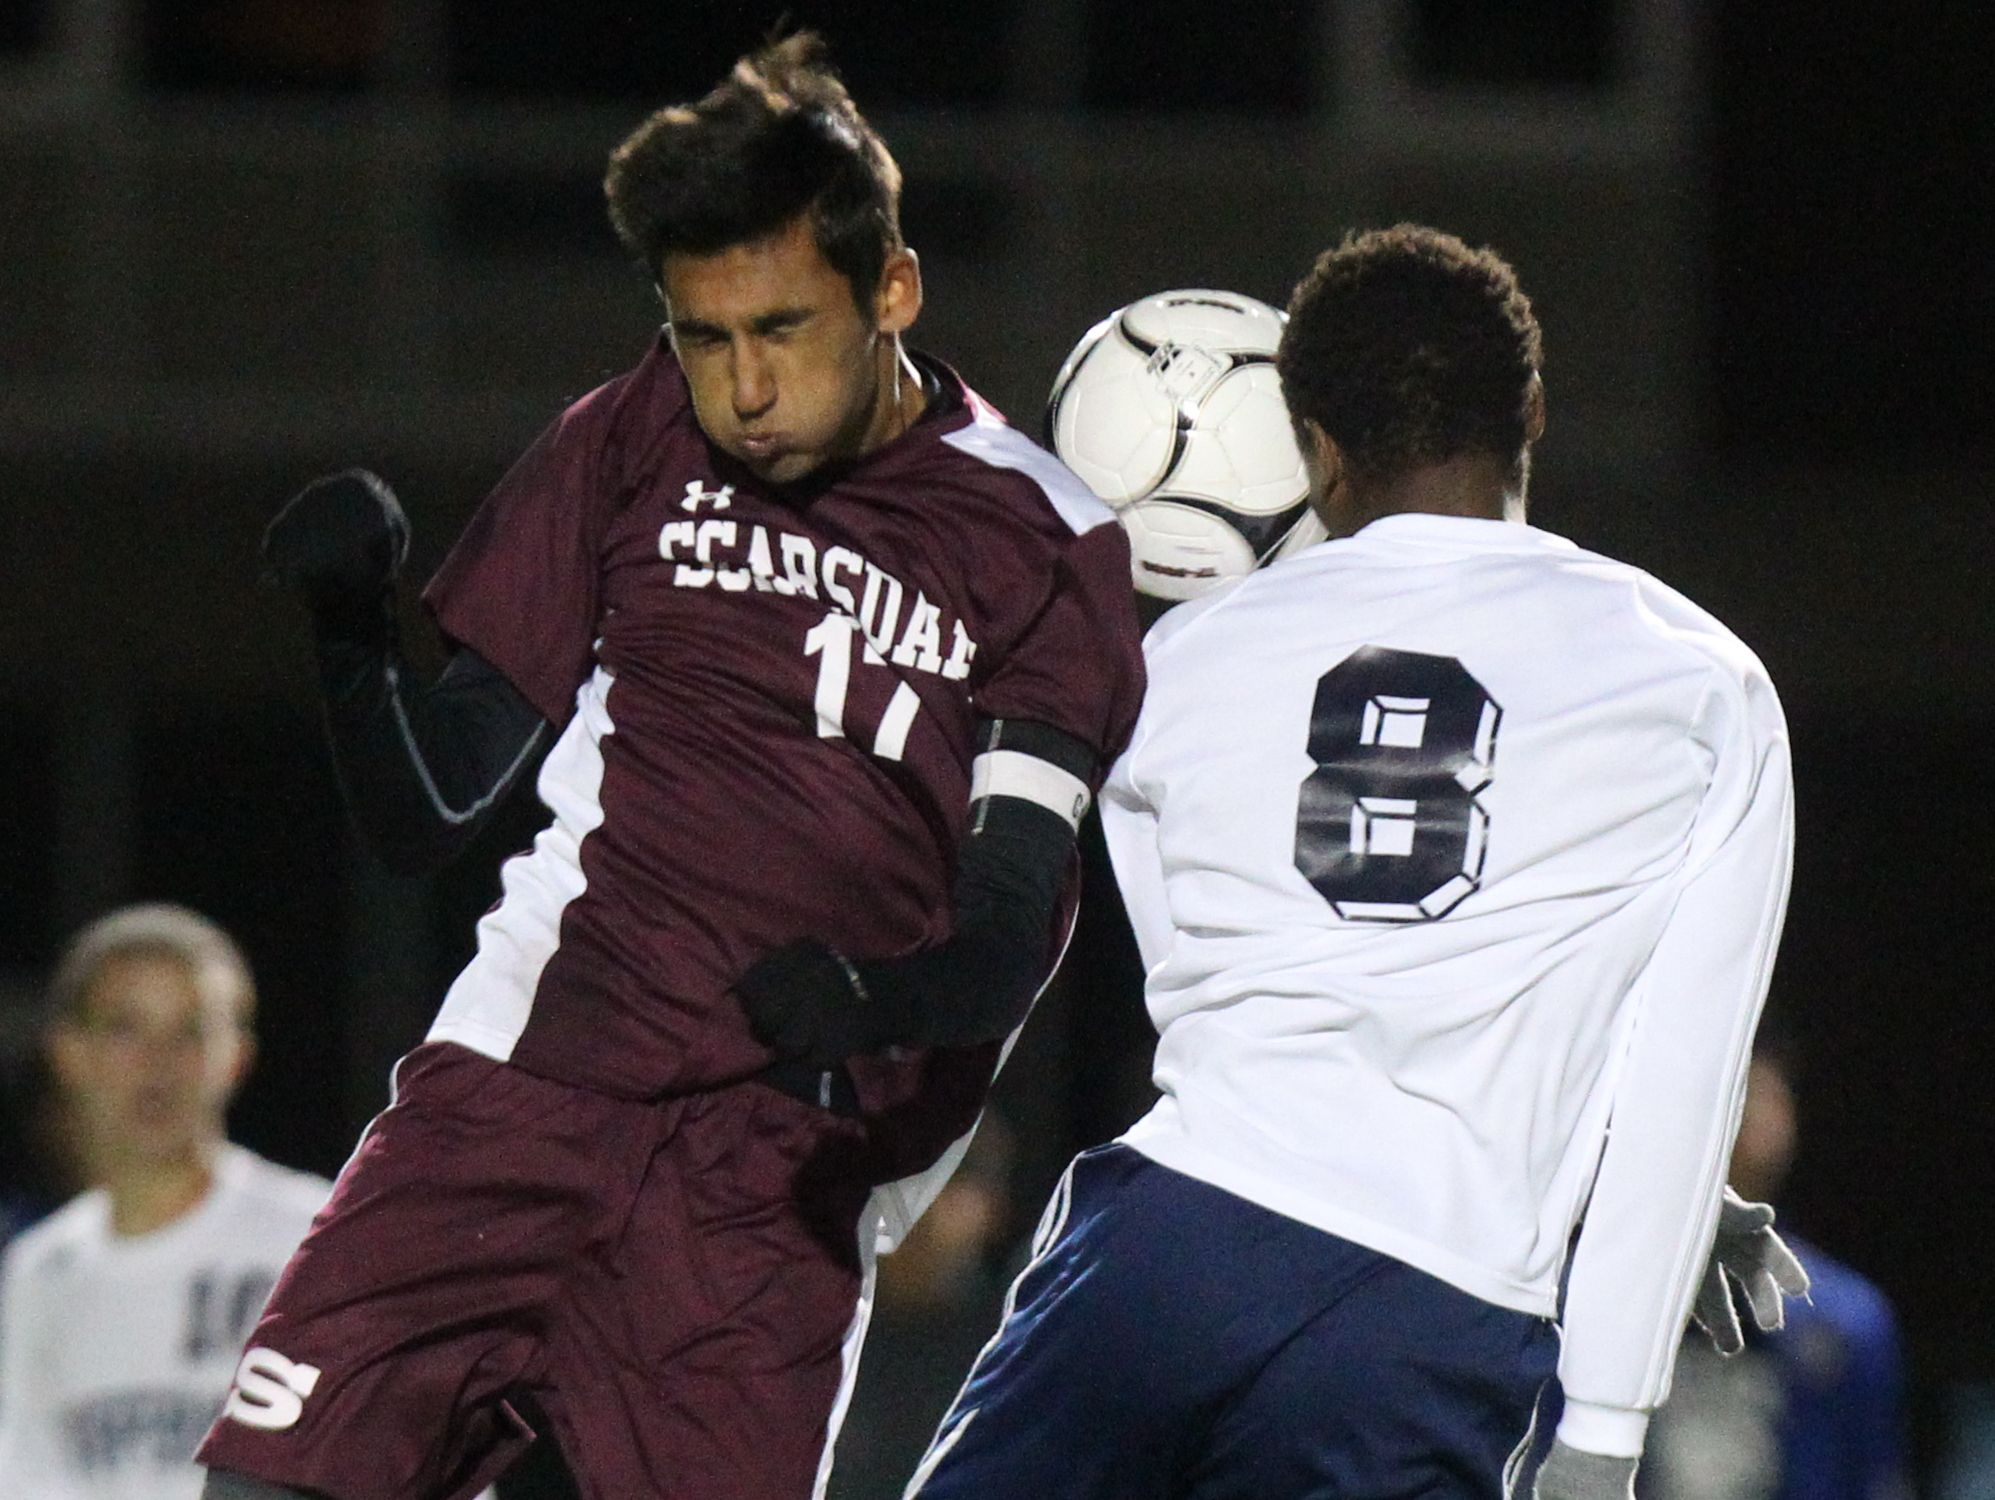 Scarsdale's Fayez Merchant, left, goes up for the ball with Suffern's Harrison Dranoff during their Class AA boys soccer quarterfinal at Suffern Oct. 24, 2016.